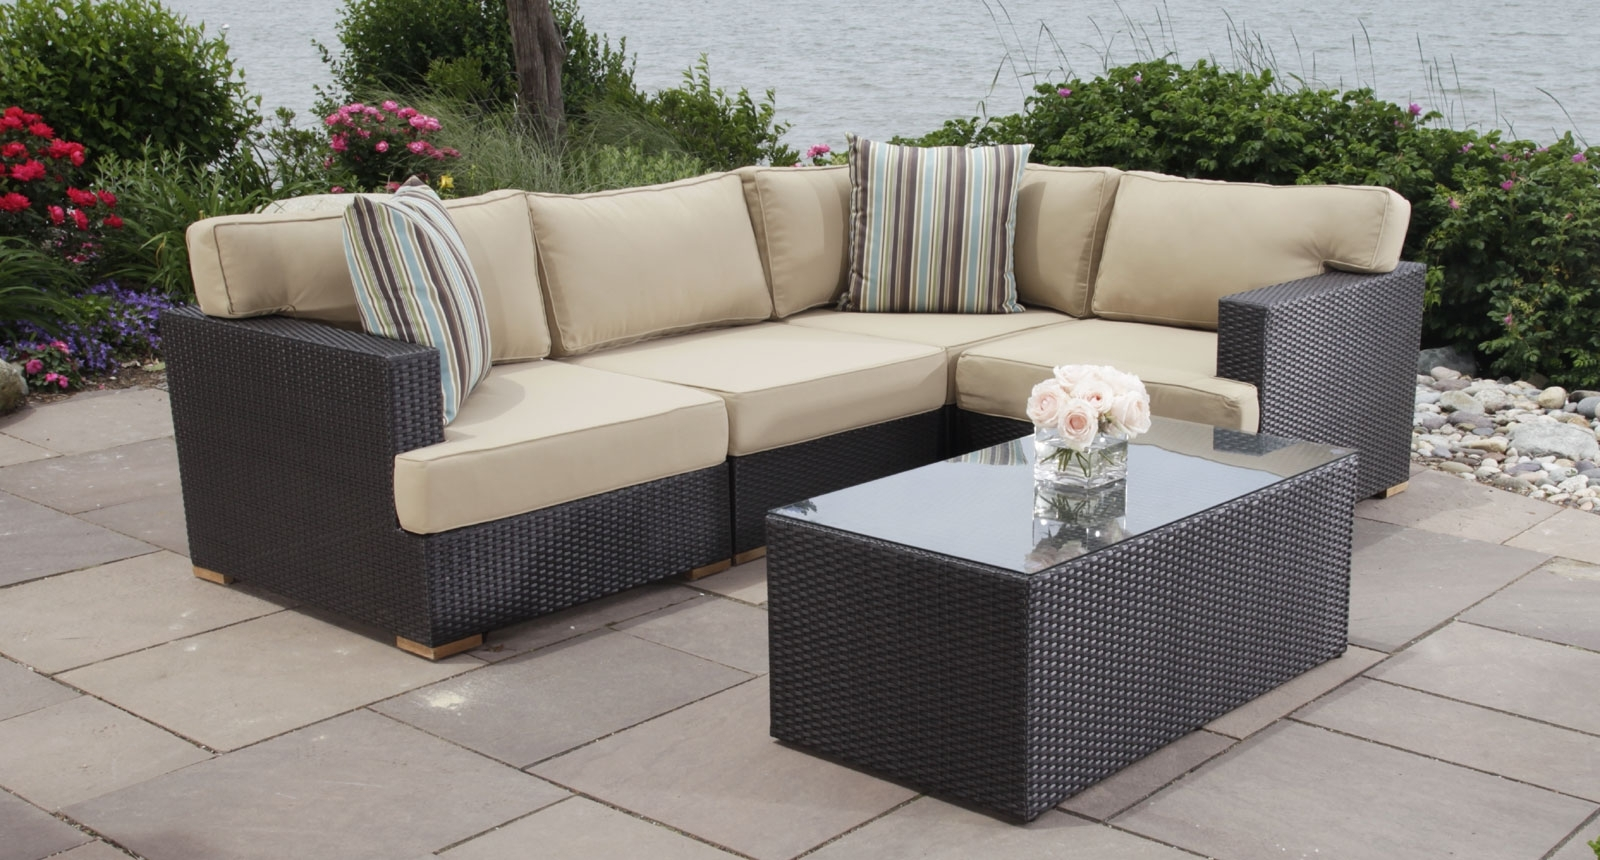 Patio Sofas Inside 2019 Outdoor Sectional Cover Amazon Waterproof Patio Furniture Covers (View 19 of 20)